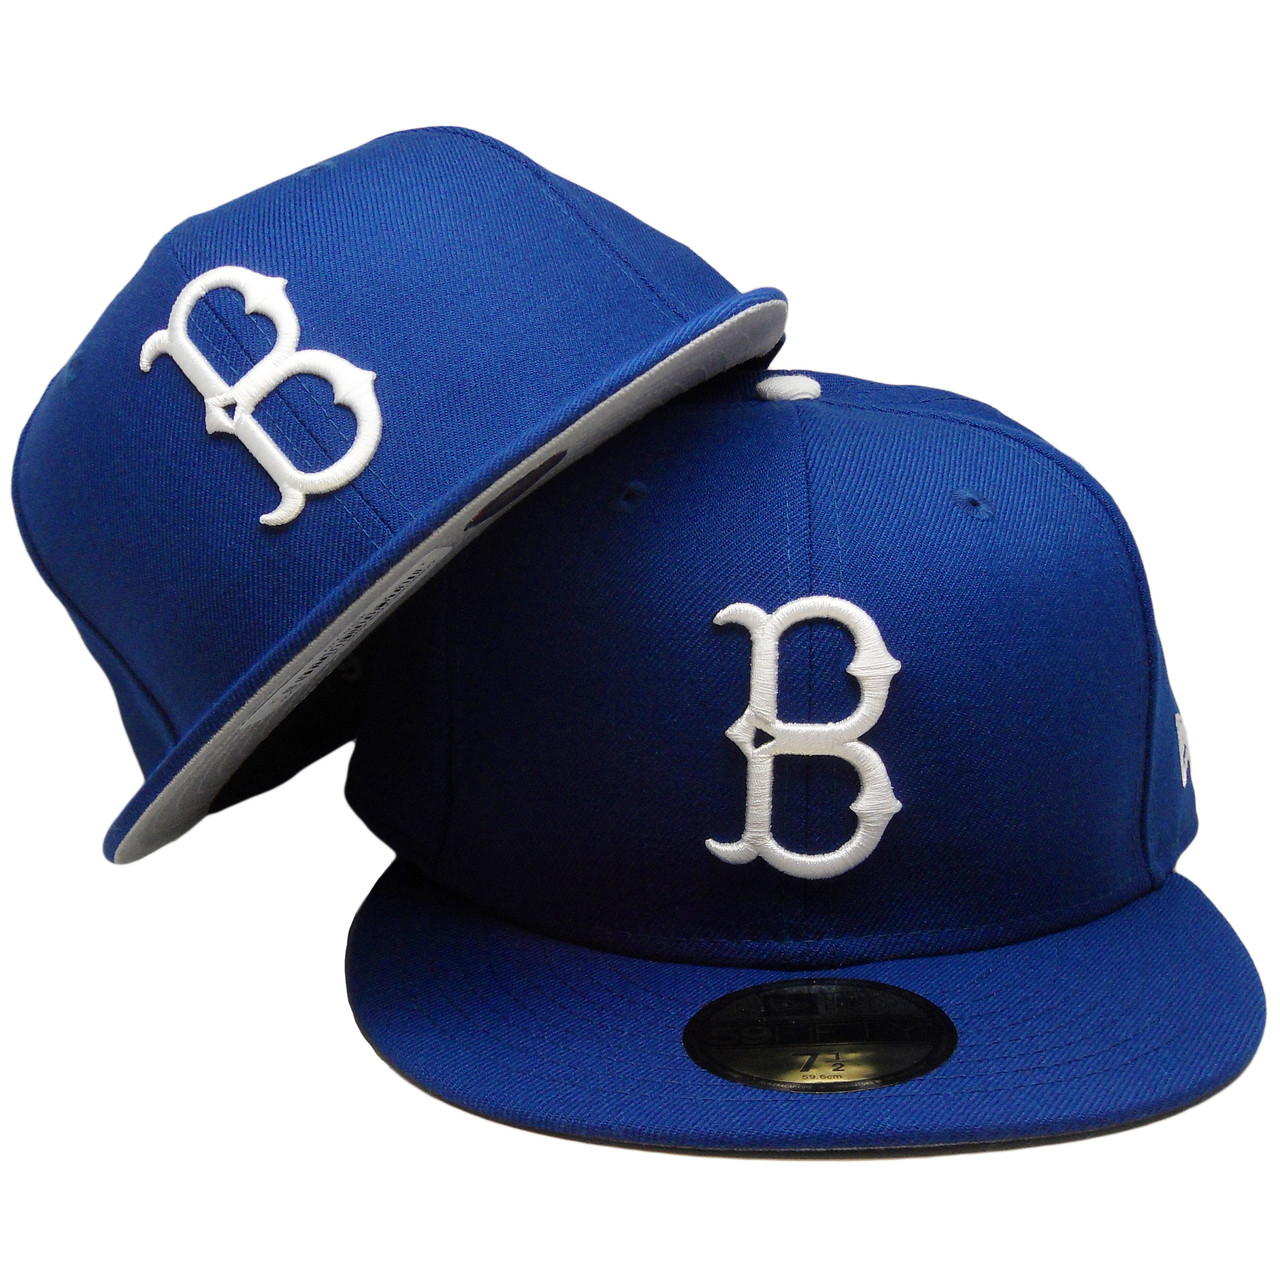 2b6e38103 Brooklyn Dodgers Custom Gray Bottom 59Fifty Fitted Hat - Royal, White -  ECapsUnlimited.com